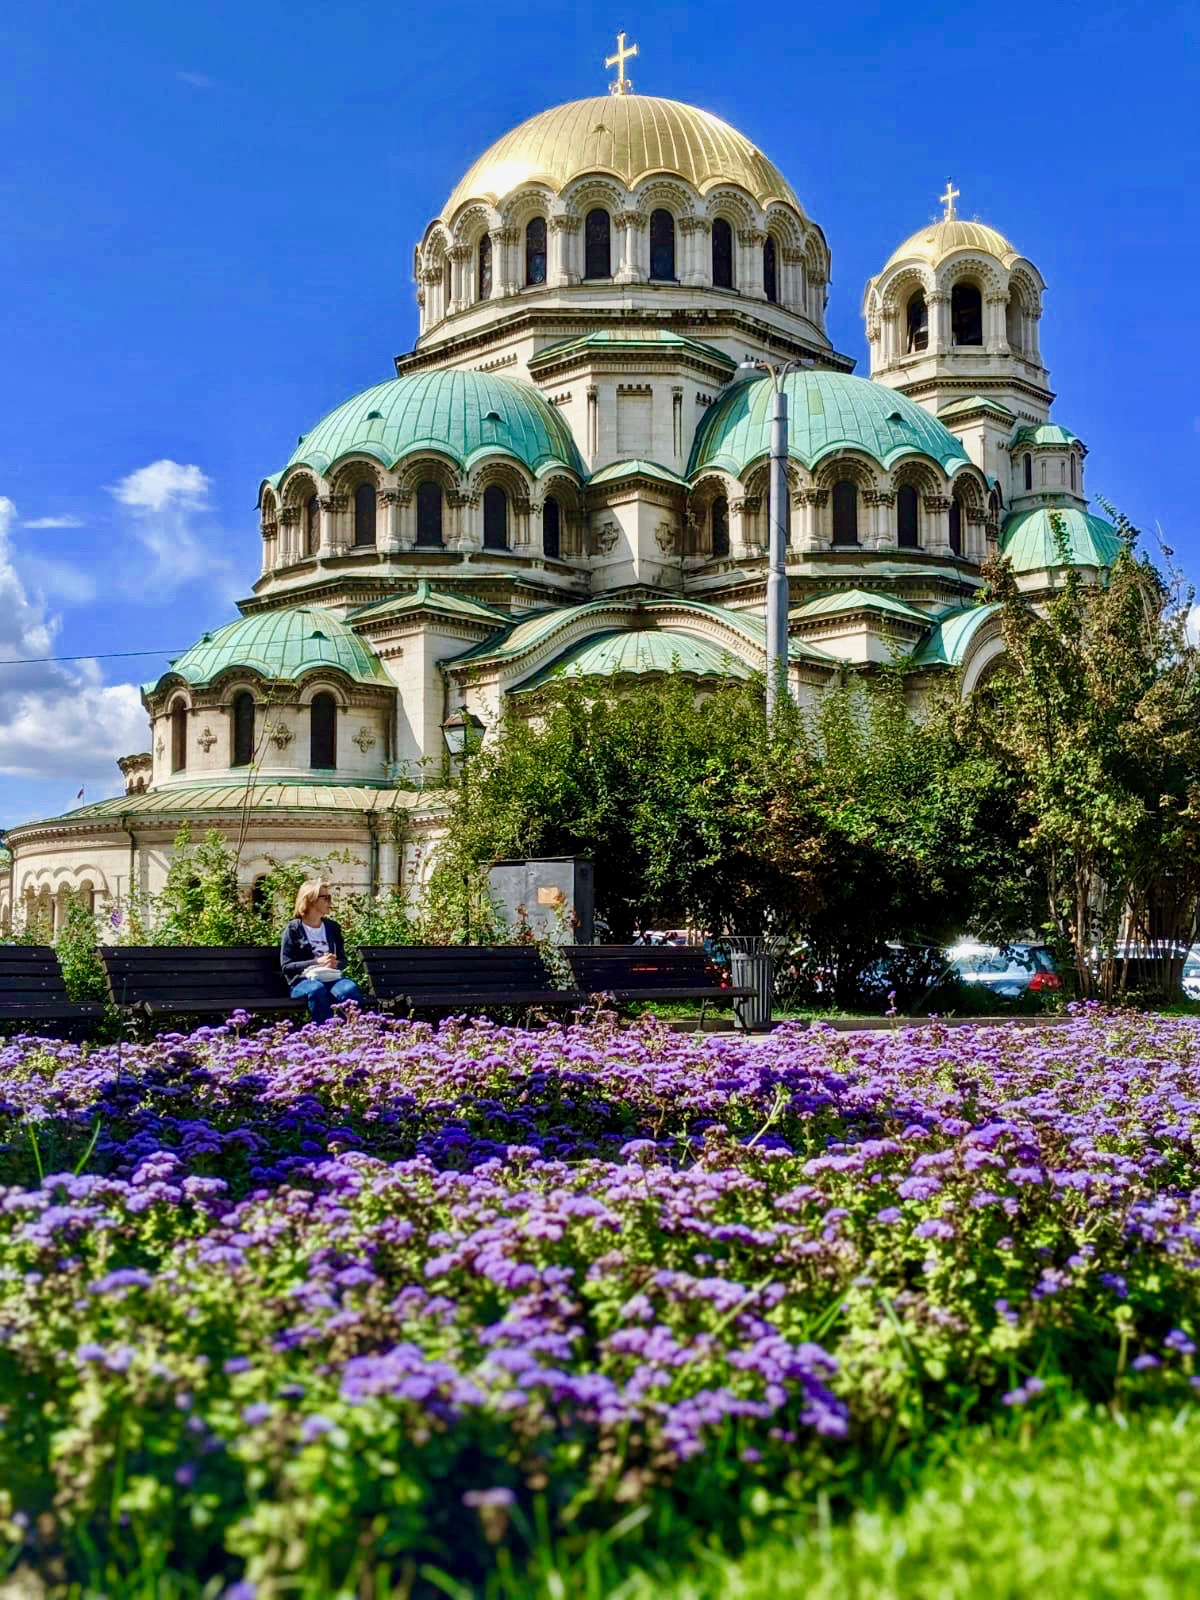 Sofia on our Istanbul to Venice itinerary showing the Alexander Nevsky Cathedral with purple flowers in the foreground